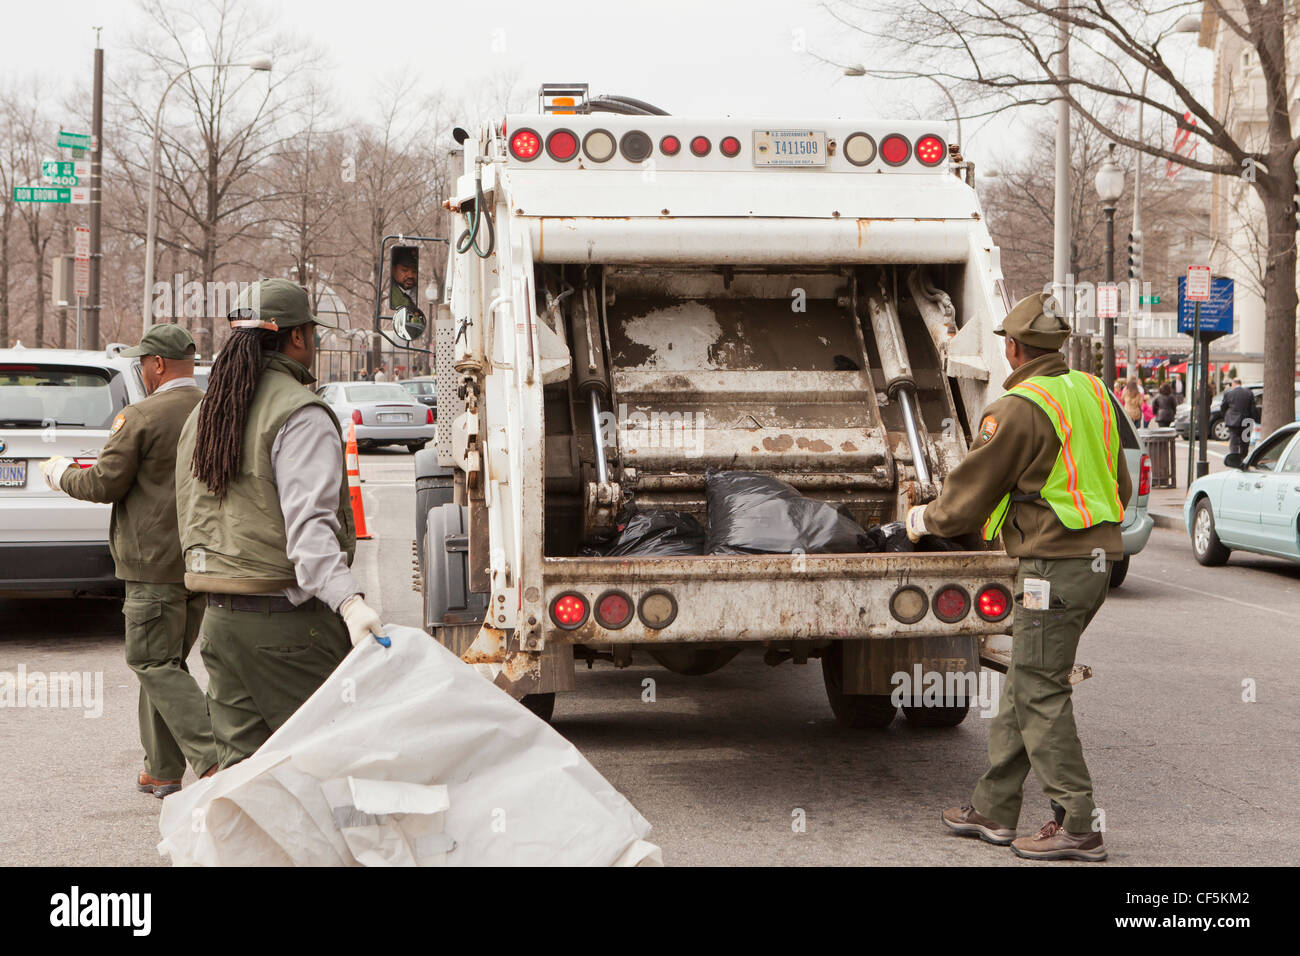 City refuse collection workers - Washington, DC USA - Stock Image